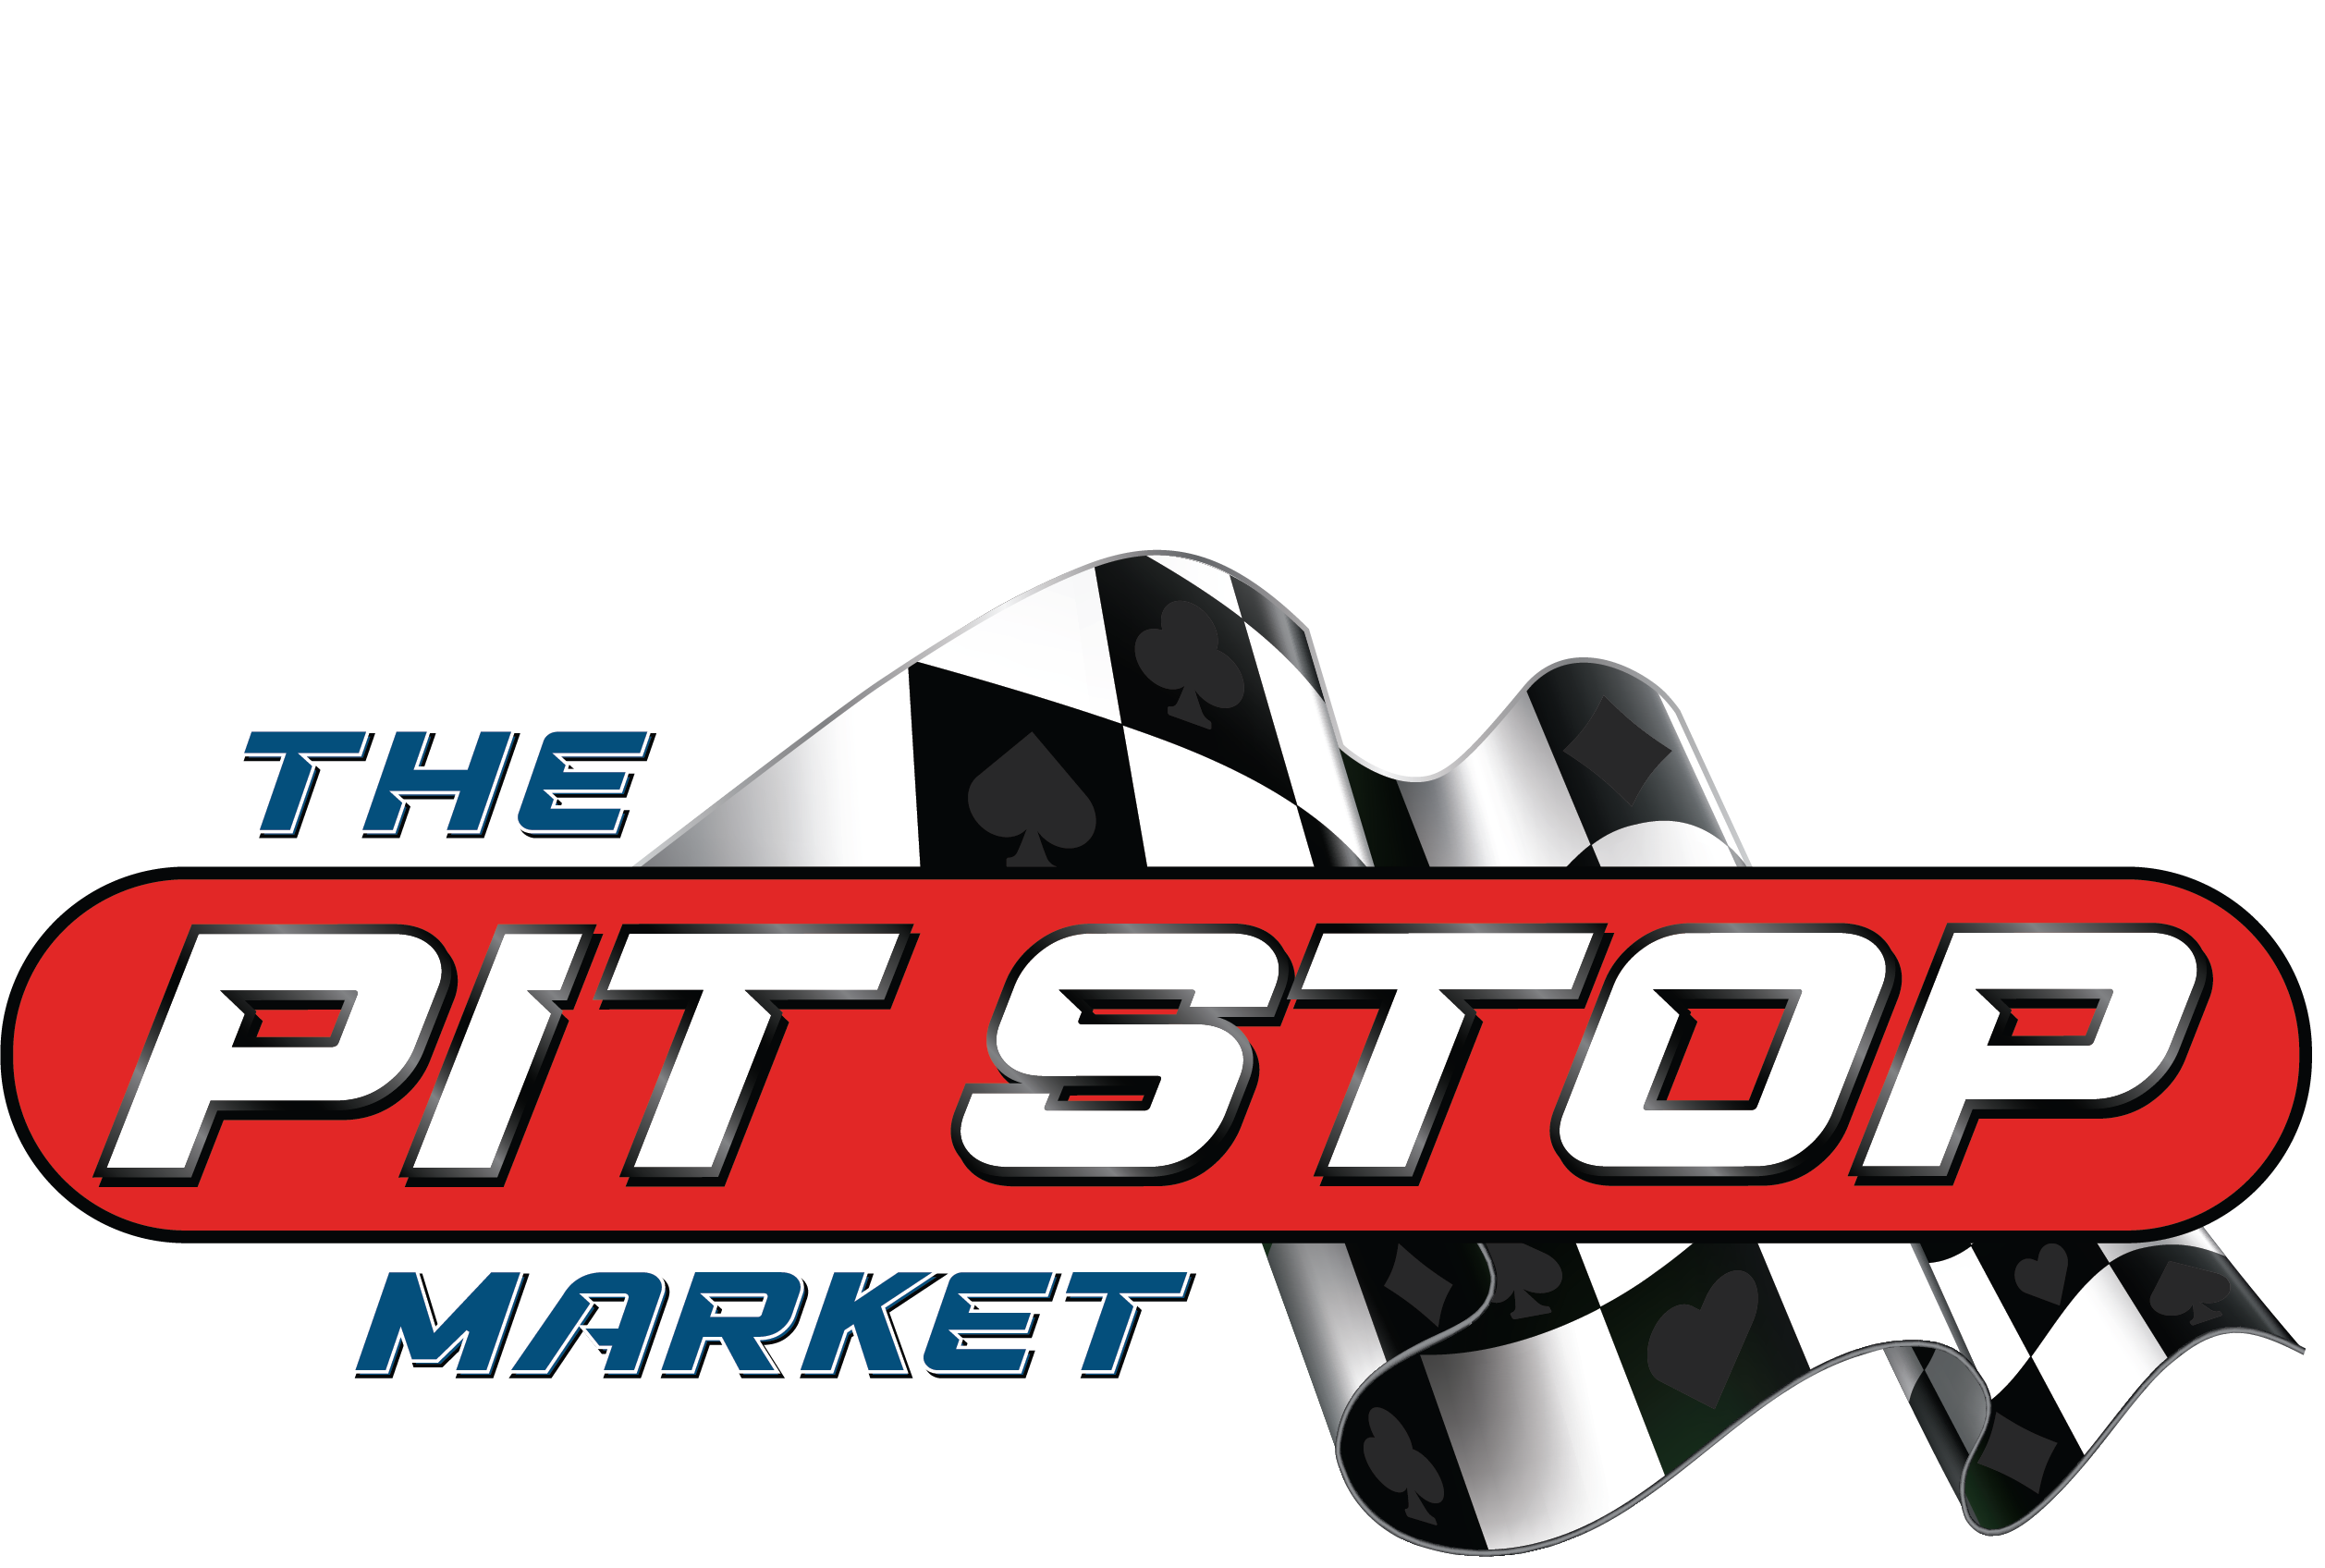 The Pit Stop Market